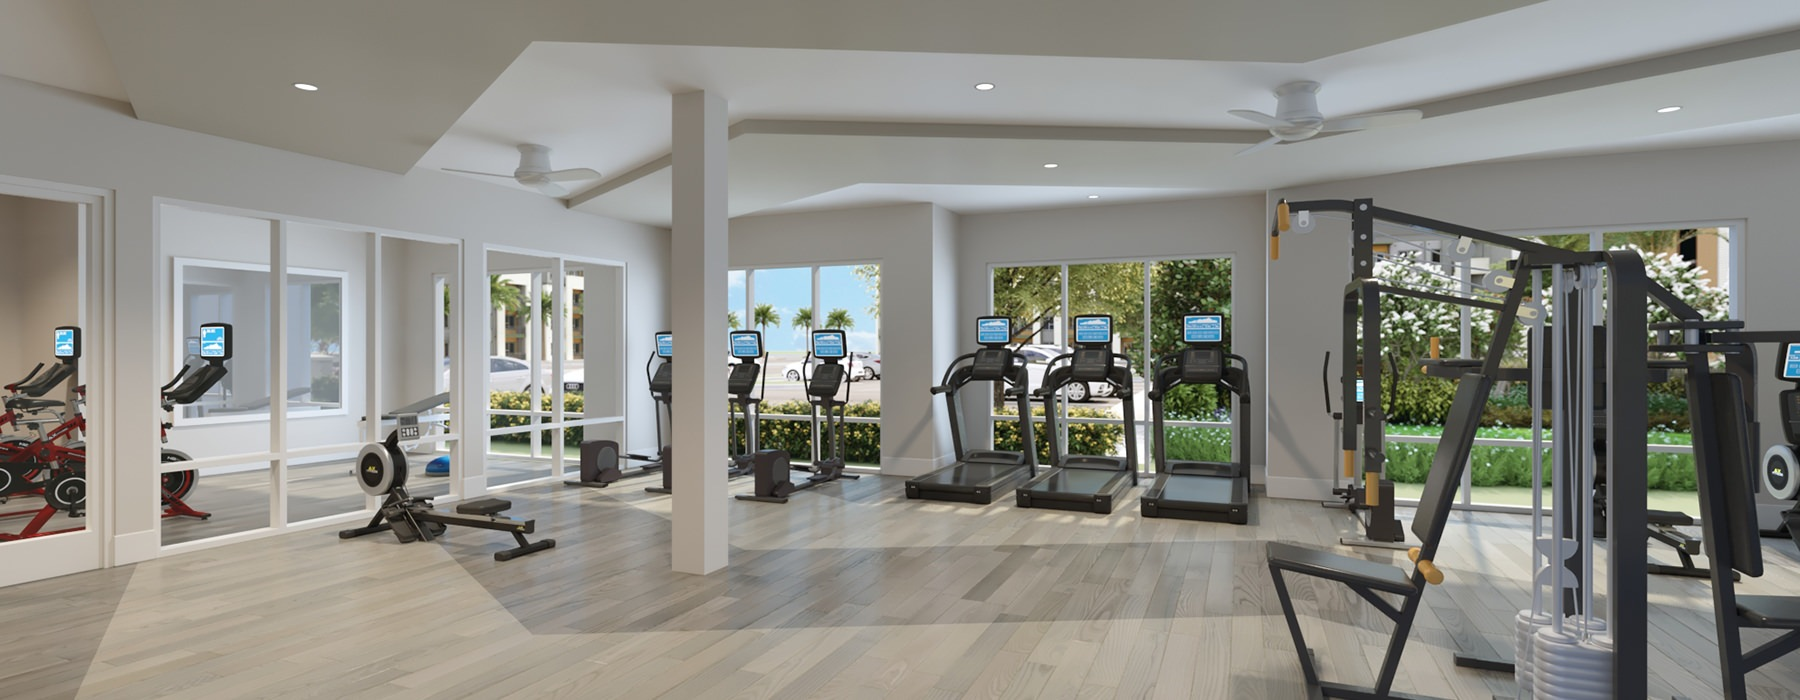 Treadmills And Ample Fitness Center Equipment At Legacy Universal Apartments In Orlando, FL